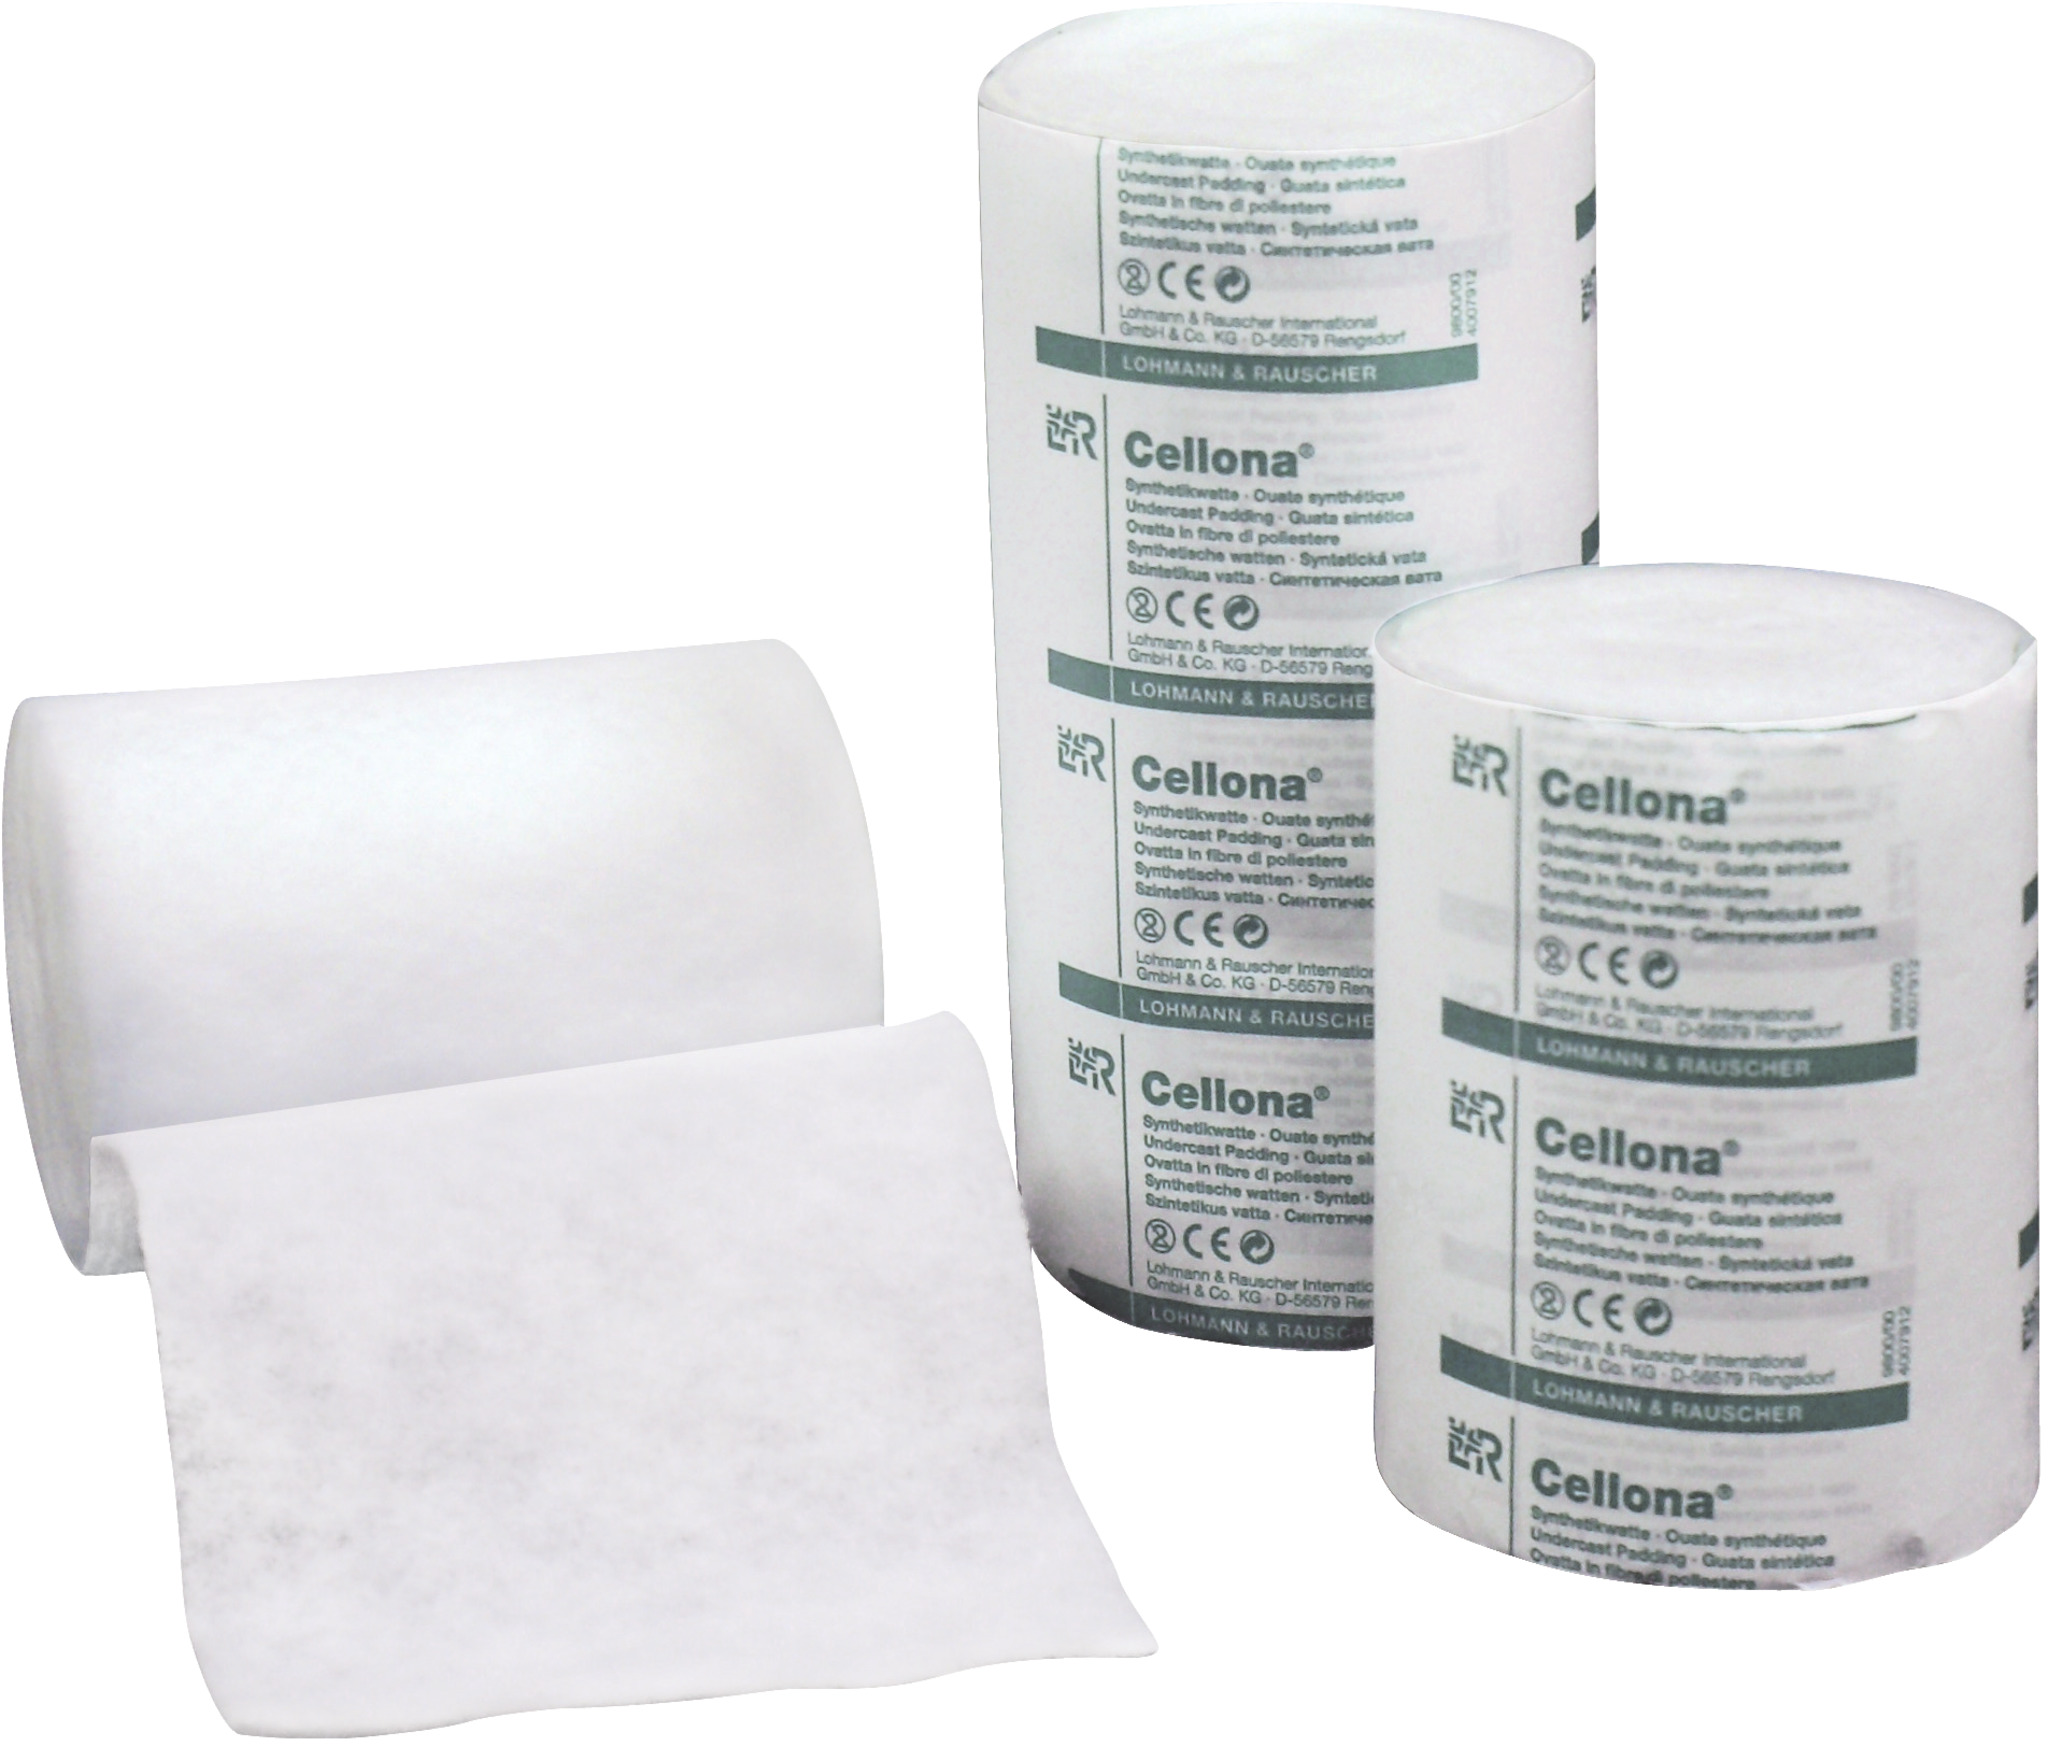 Cellona Polster Adhesive Padding Cellona Padding Related Keywords Suggestions Cellona Padding